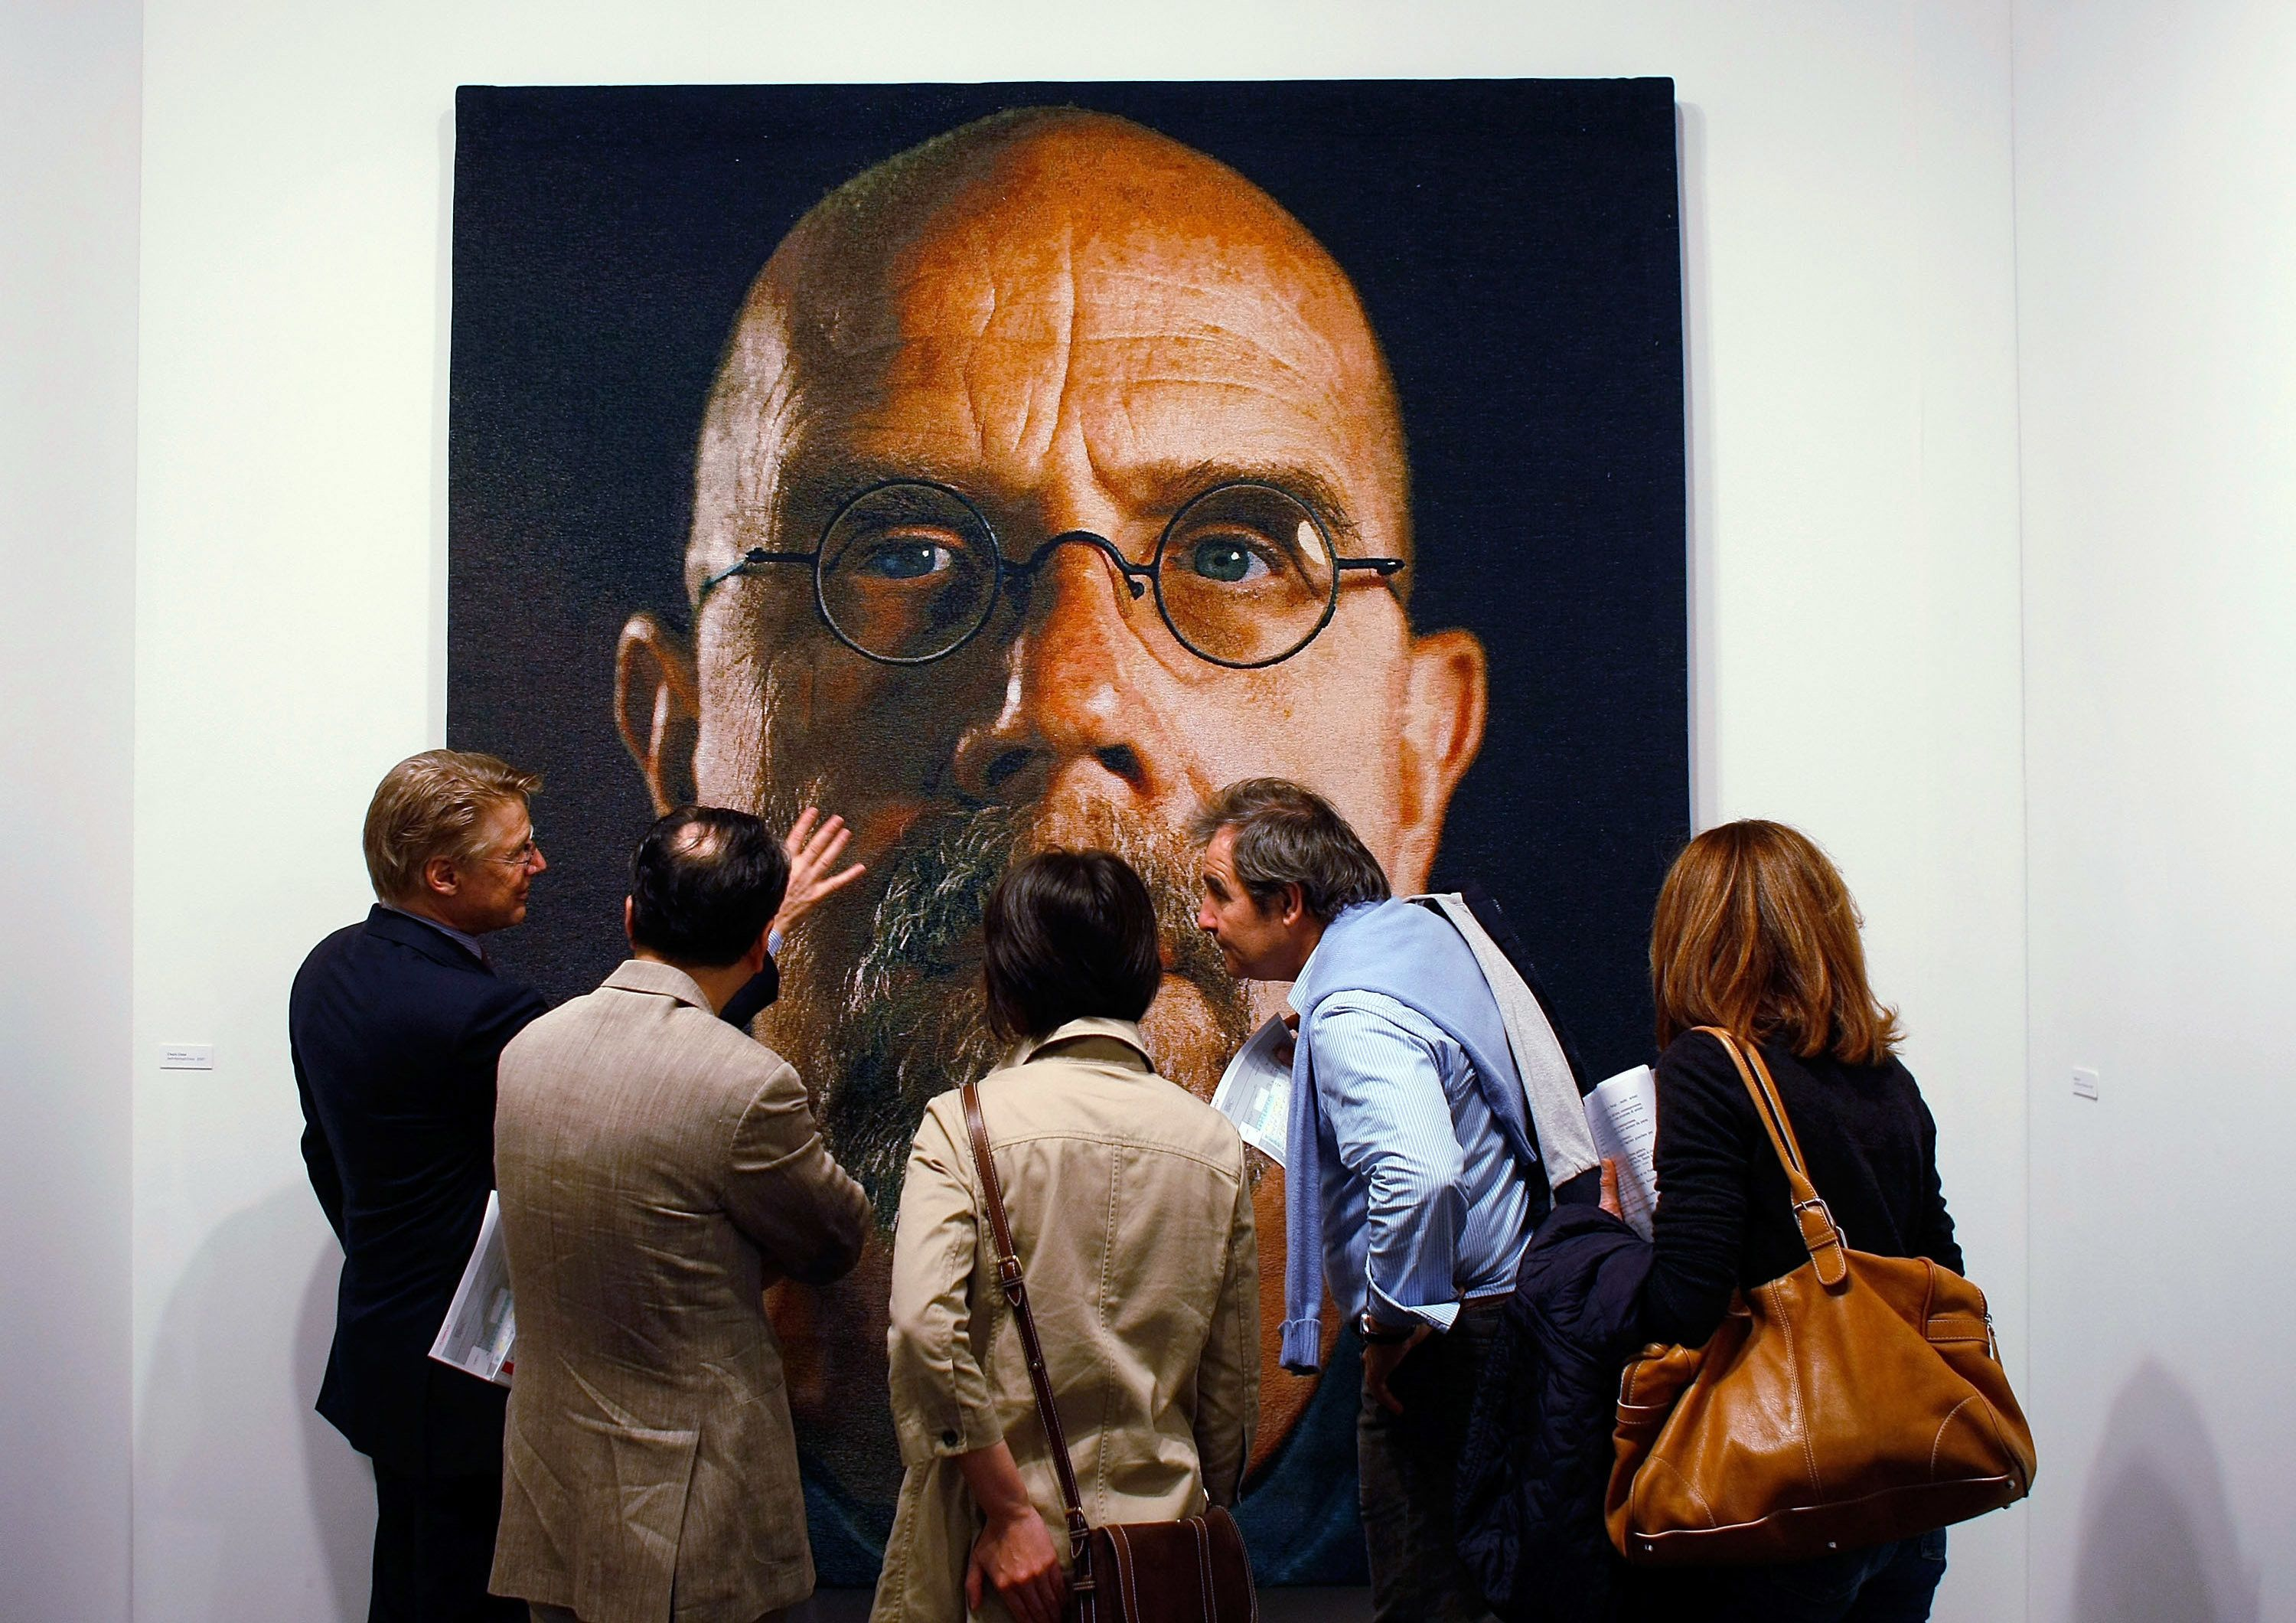 Chuck Close Prompts The Art World To Reckon With Centuries Of Gender Imbalance